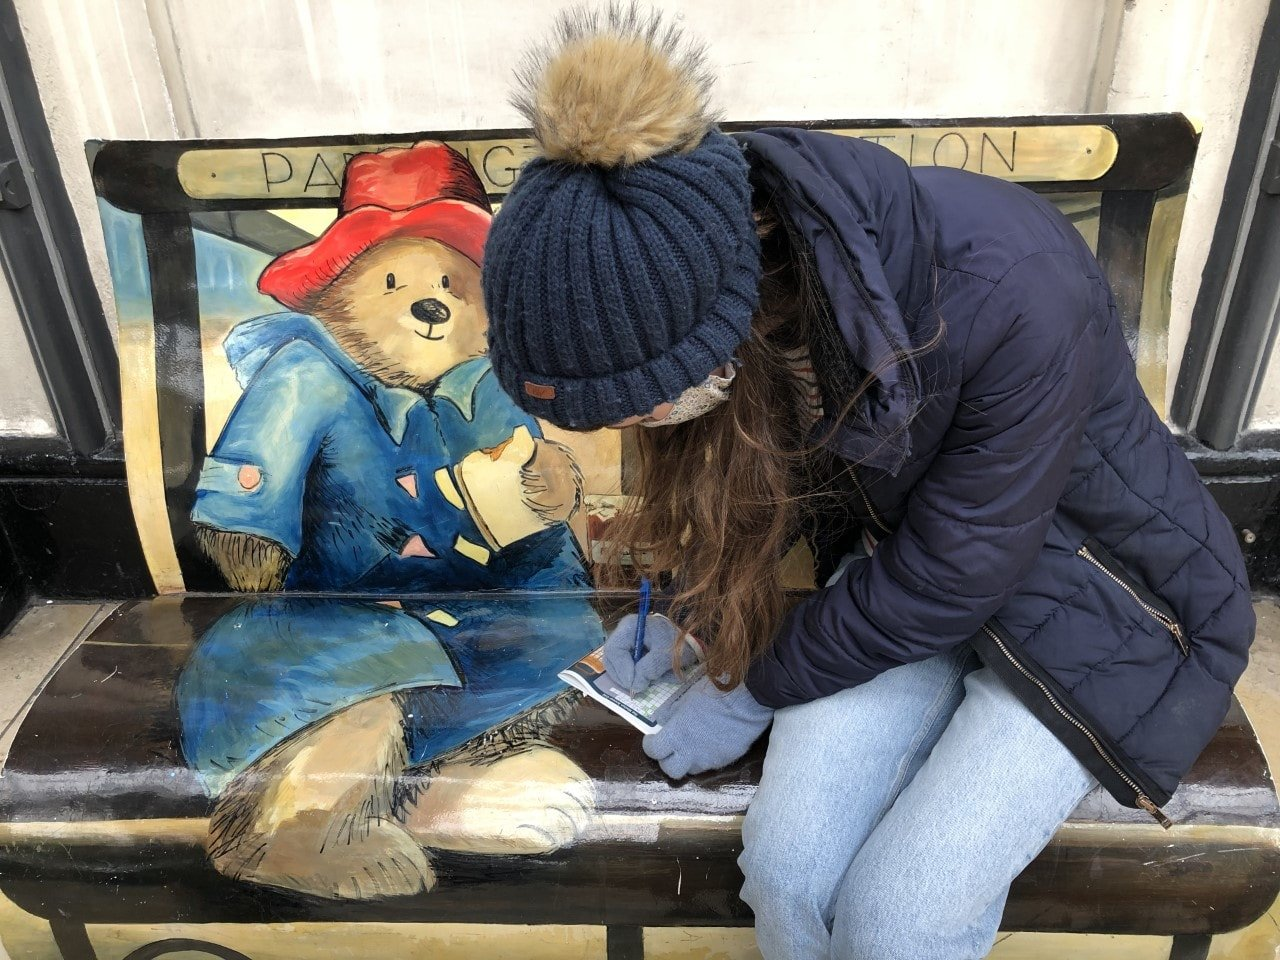 Woman completing a treasure trail map on a paddington bear bench in London